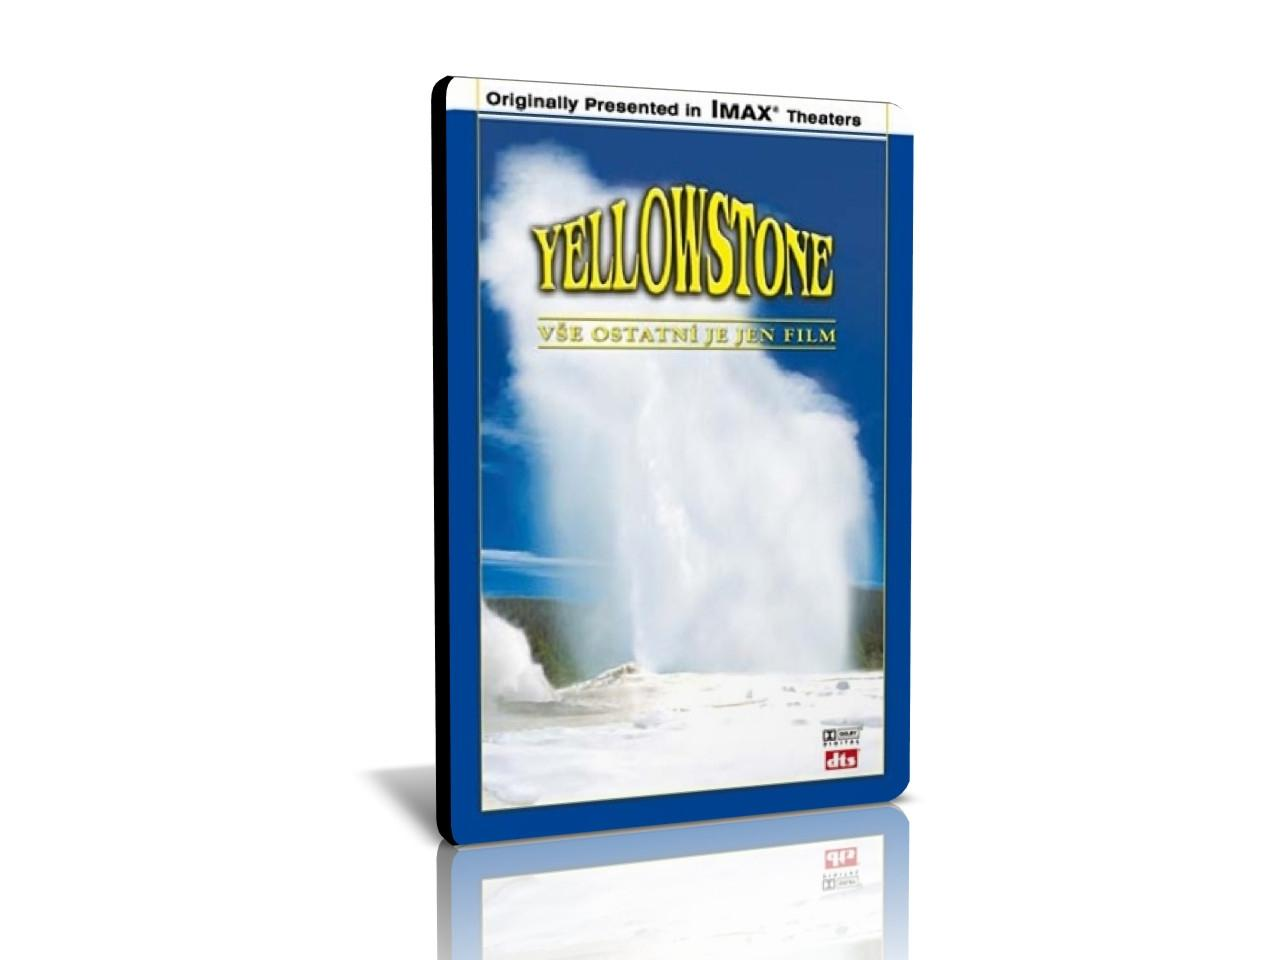 IMAX: Yellowstone (DVD)